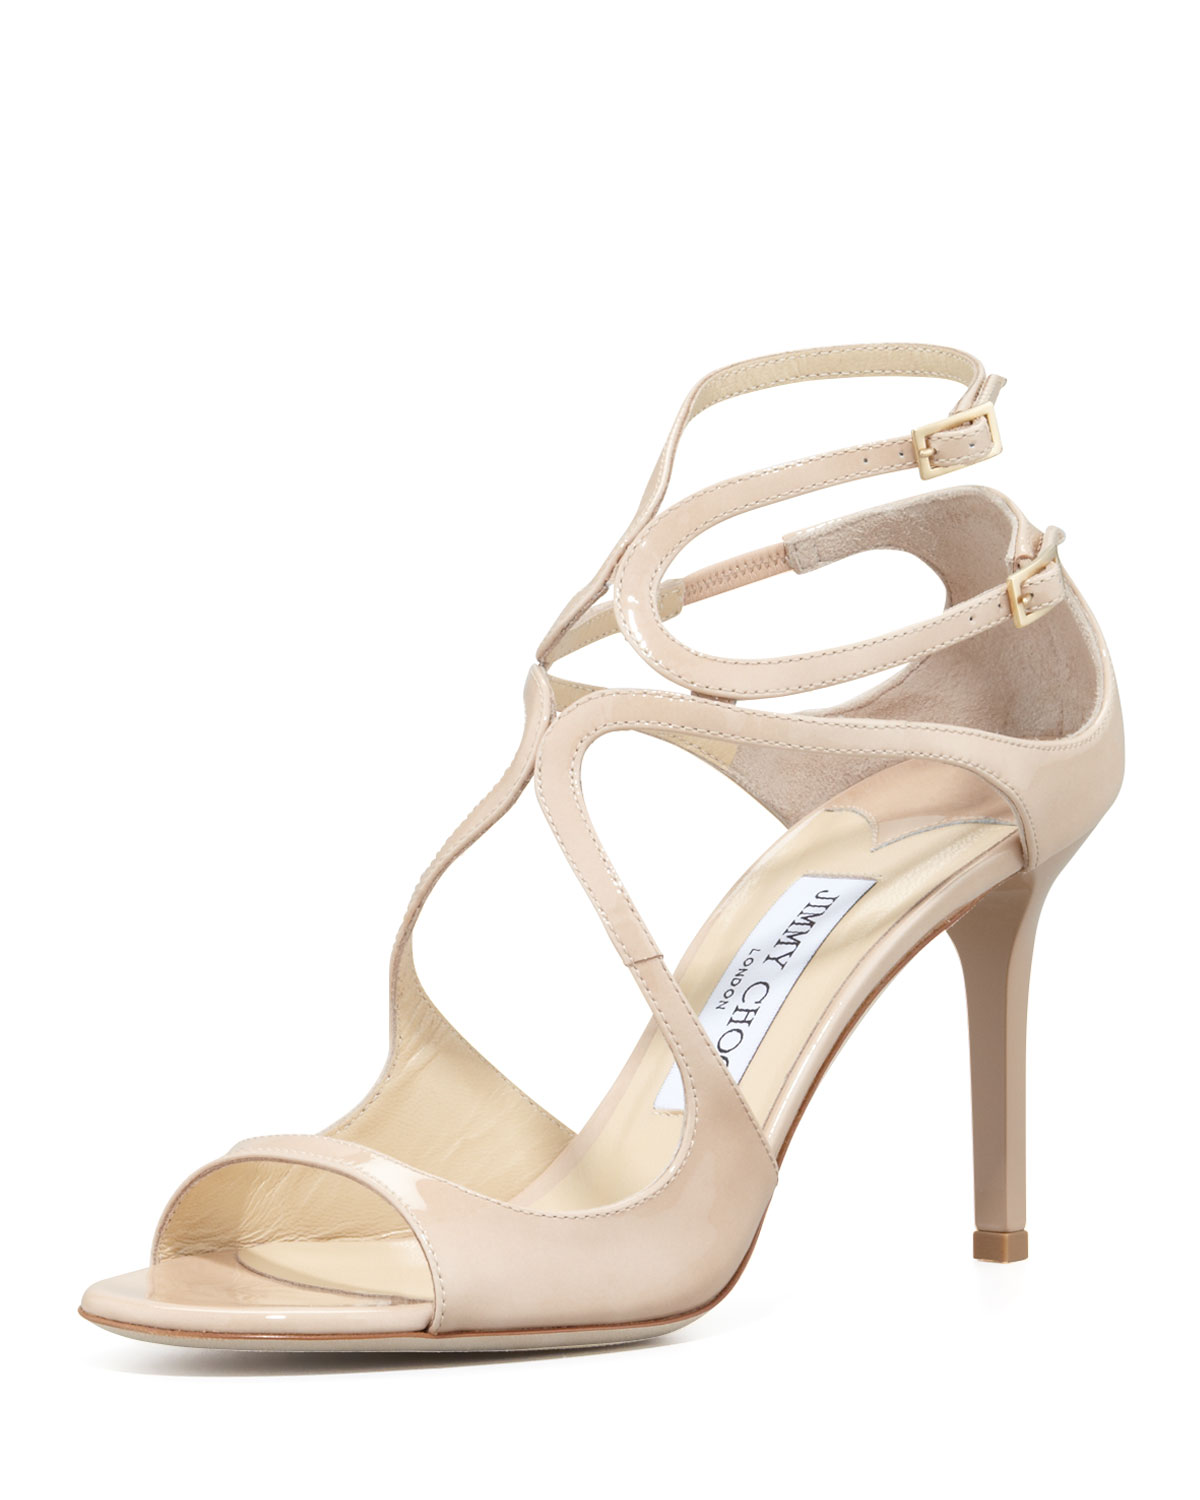 3ac68445da1 Jimmy Choo Ivette Strappy Patent Sandals